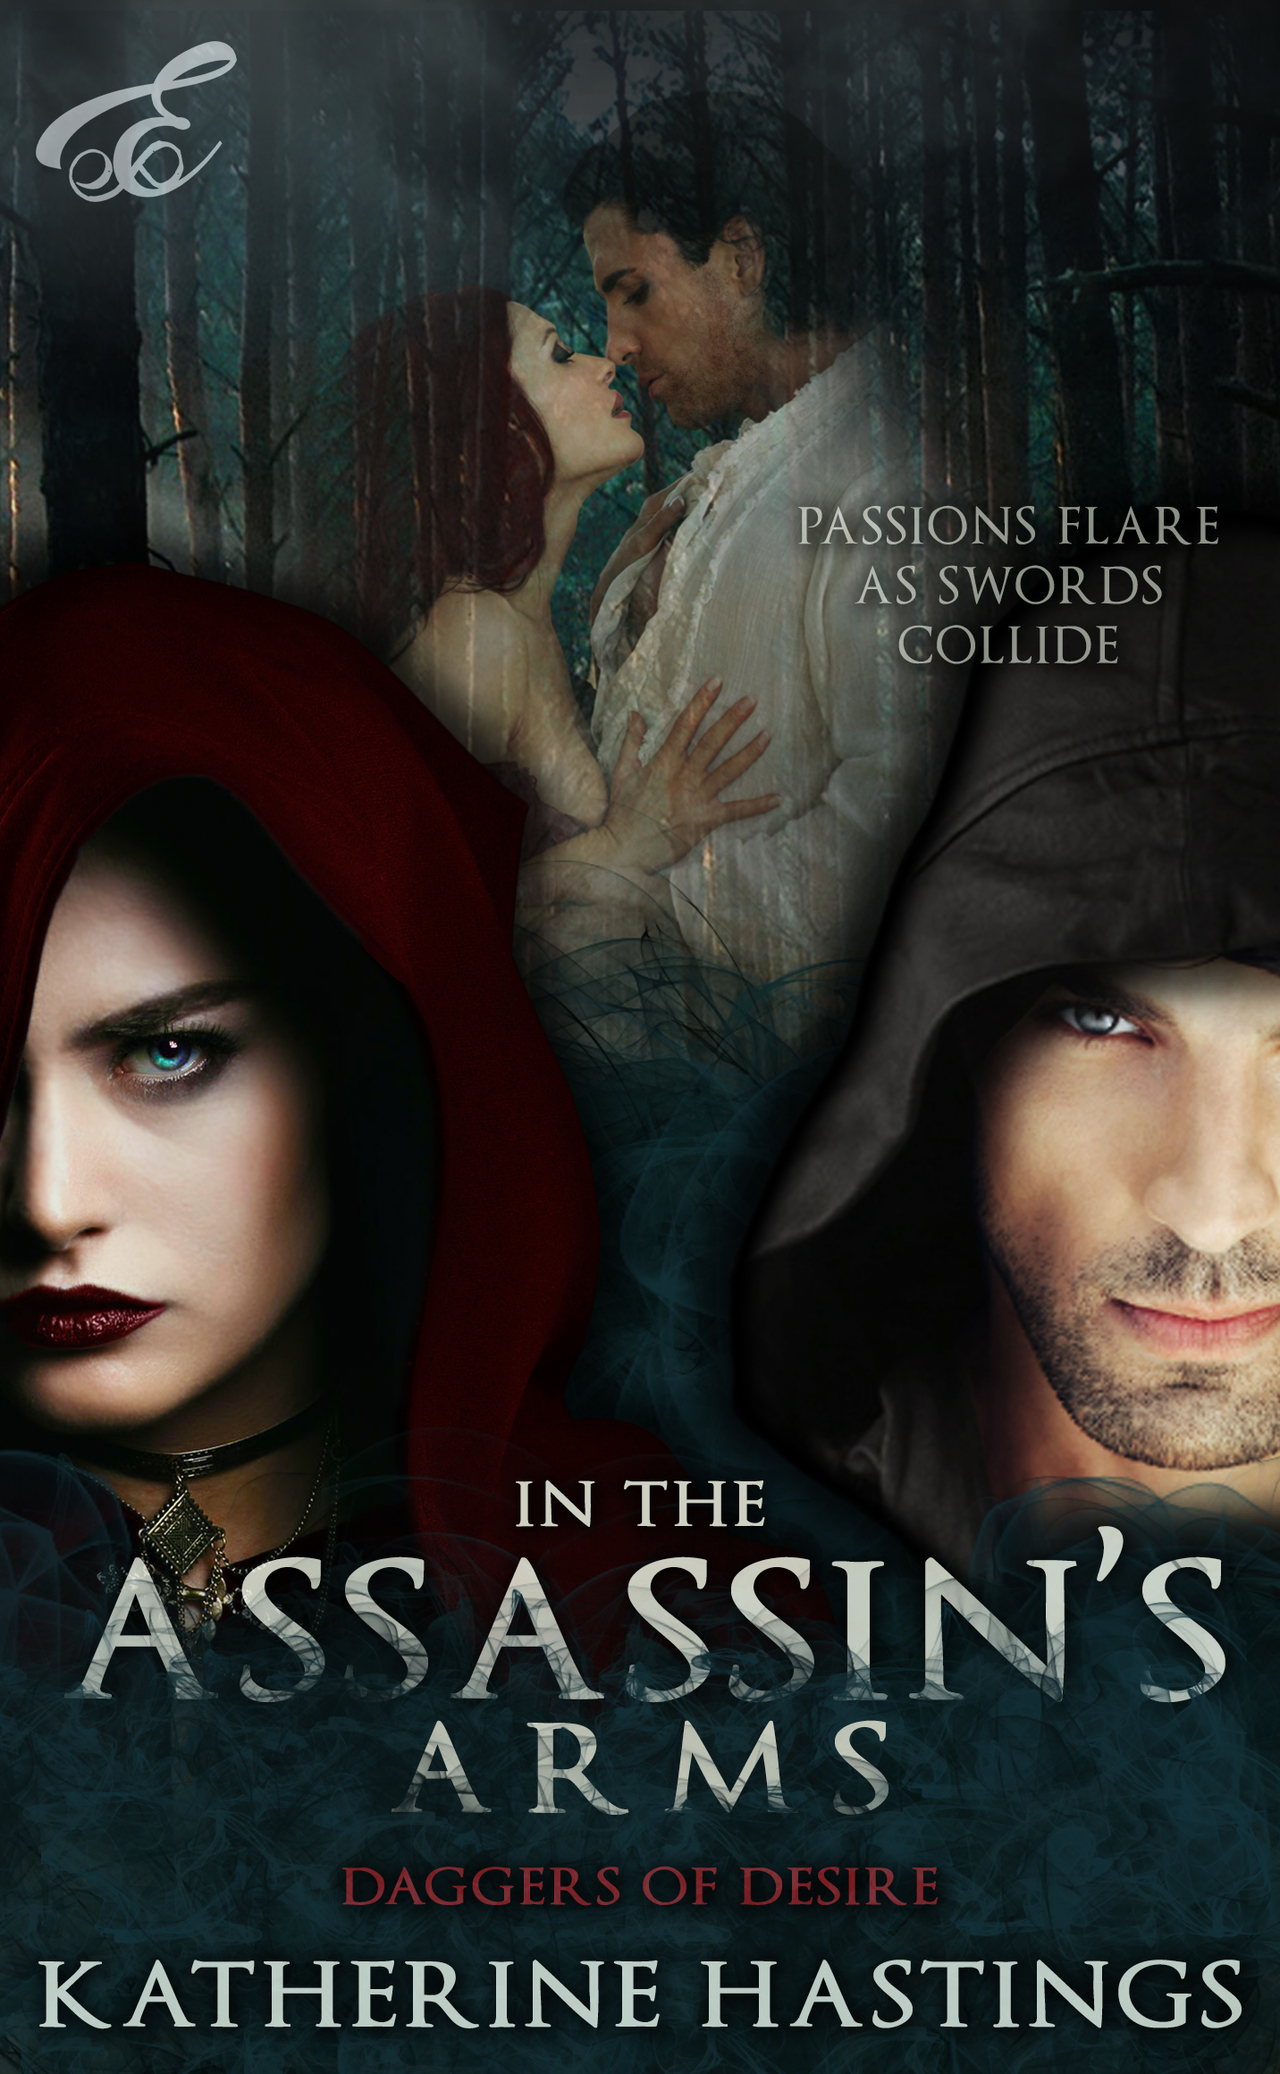 In the assasin's arms romance novel cover